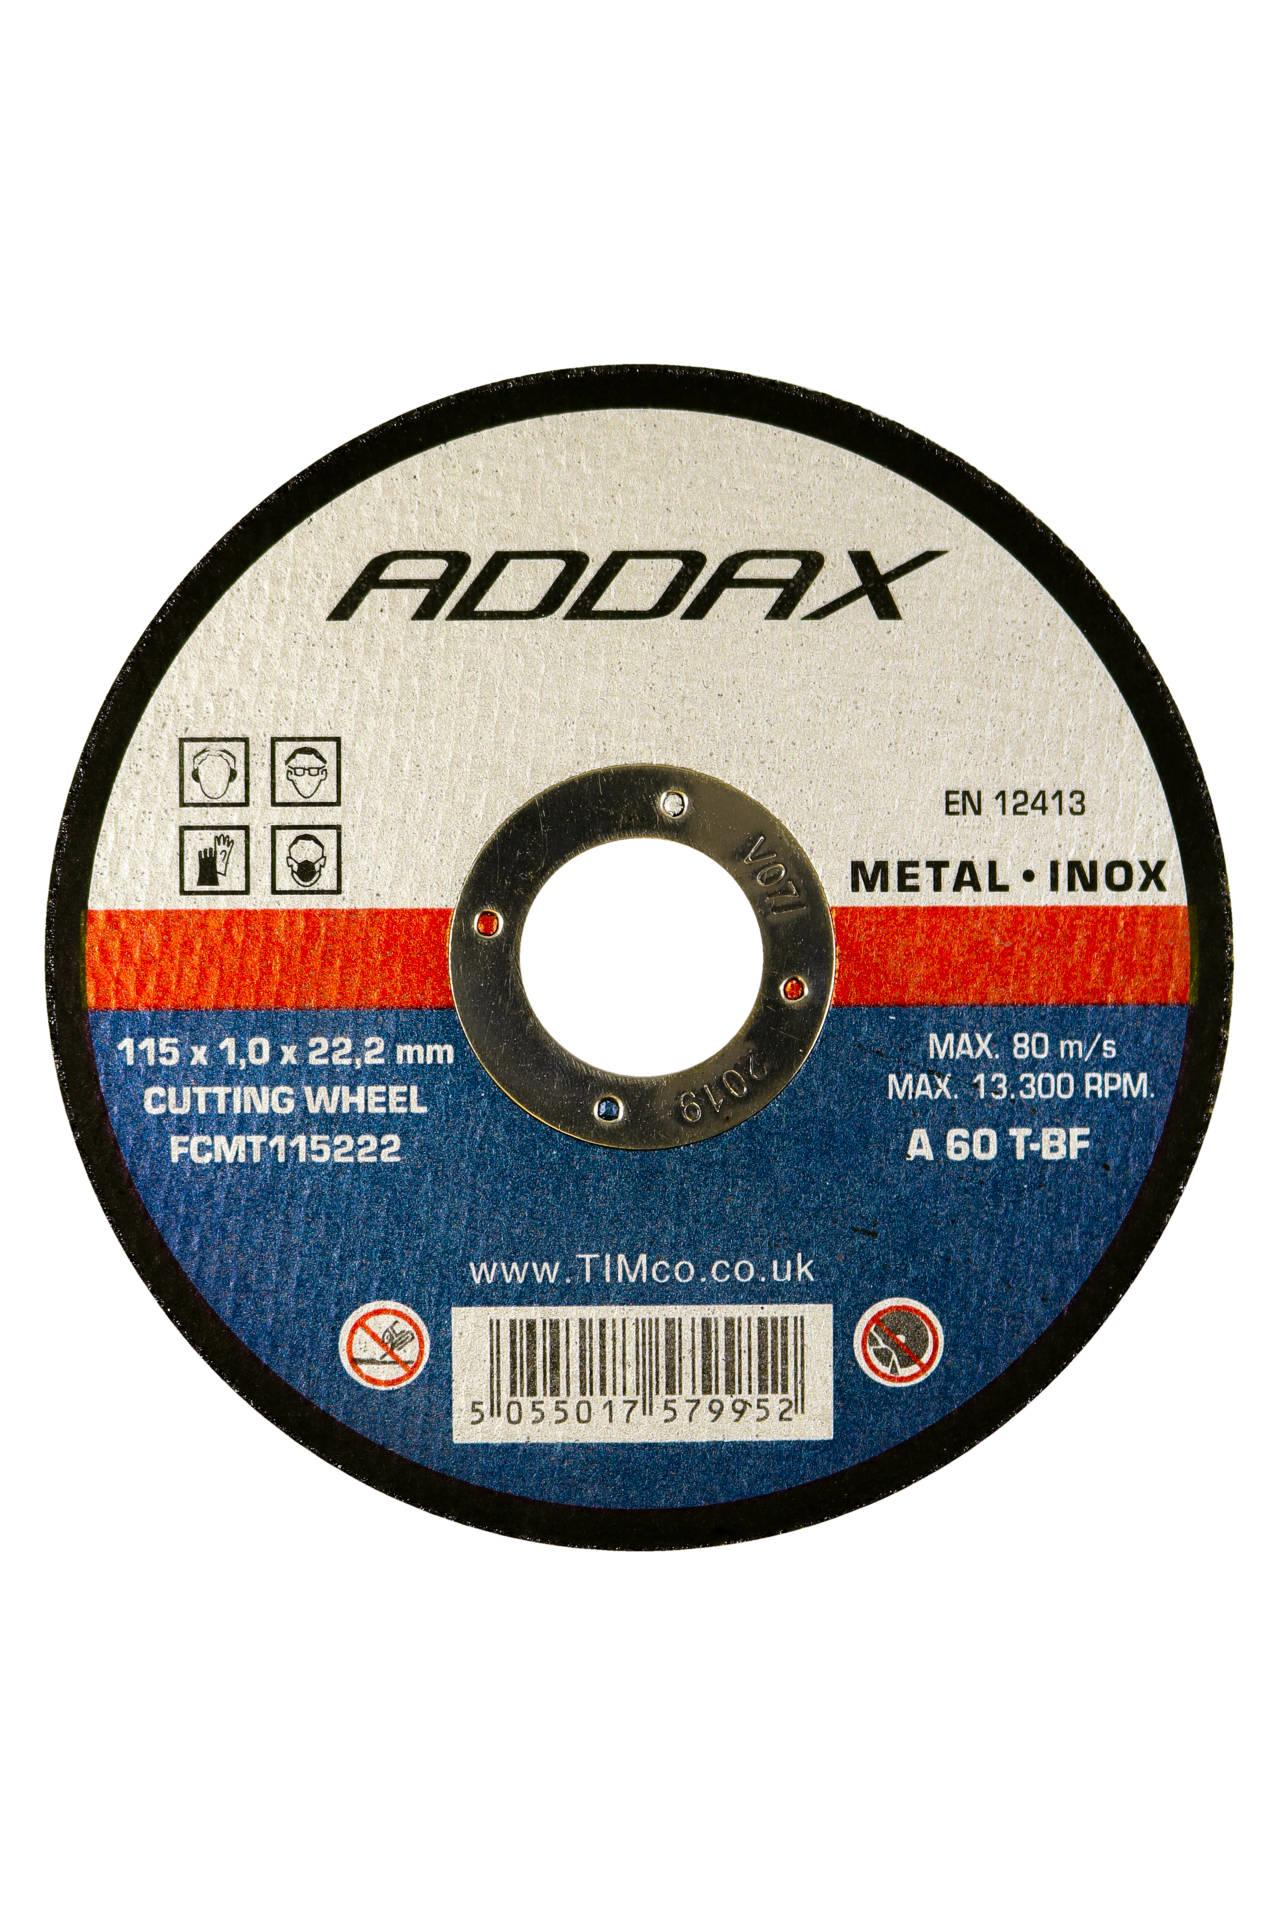 Addax Bonded Abrasive Disc - For Cutting Various Types of Metals